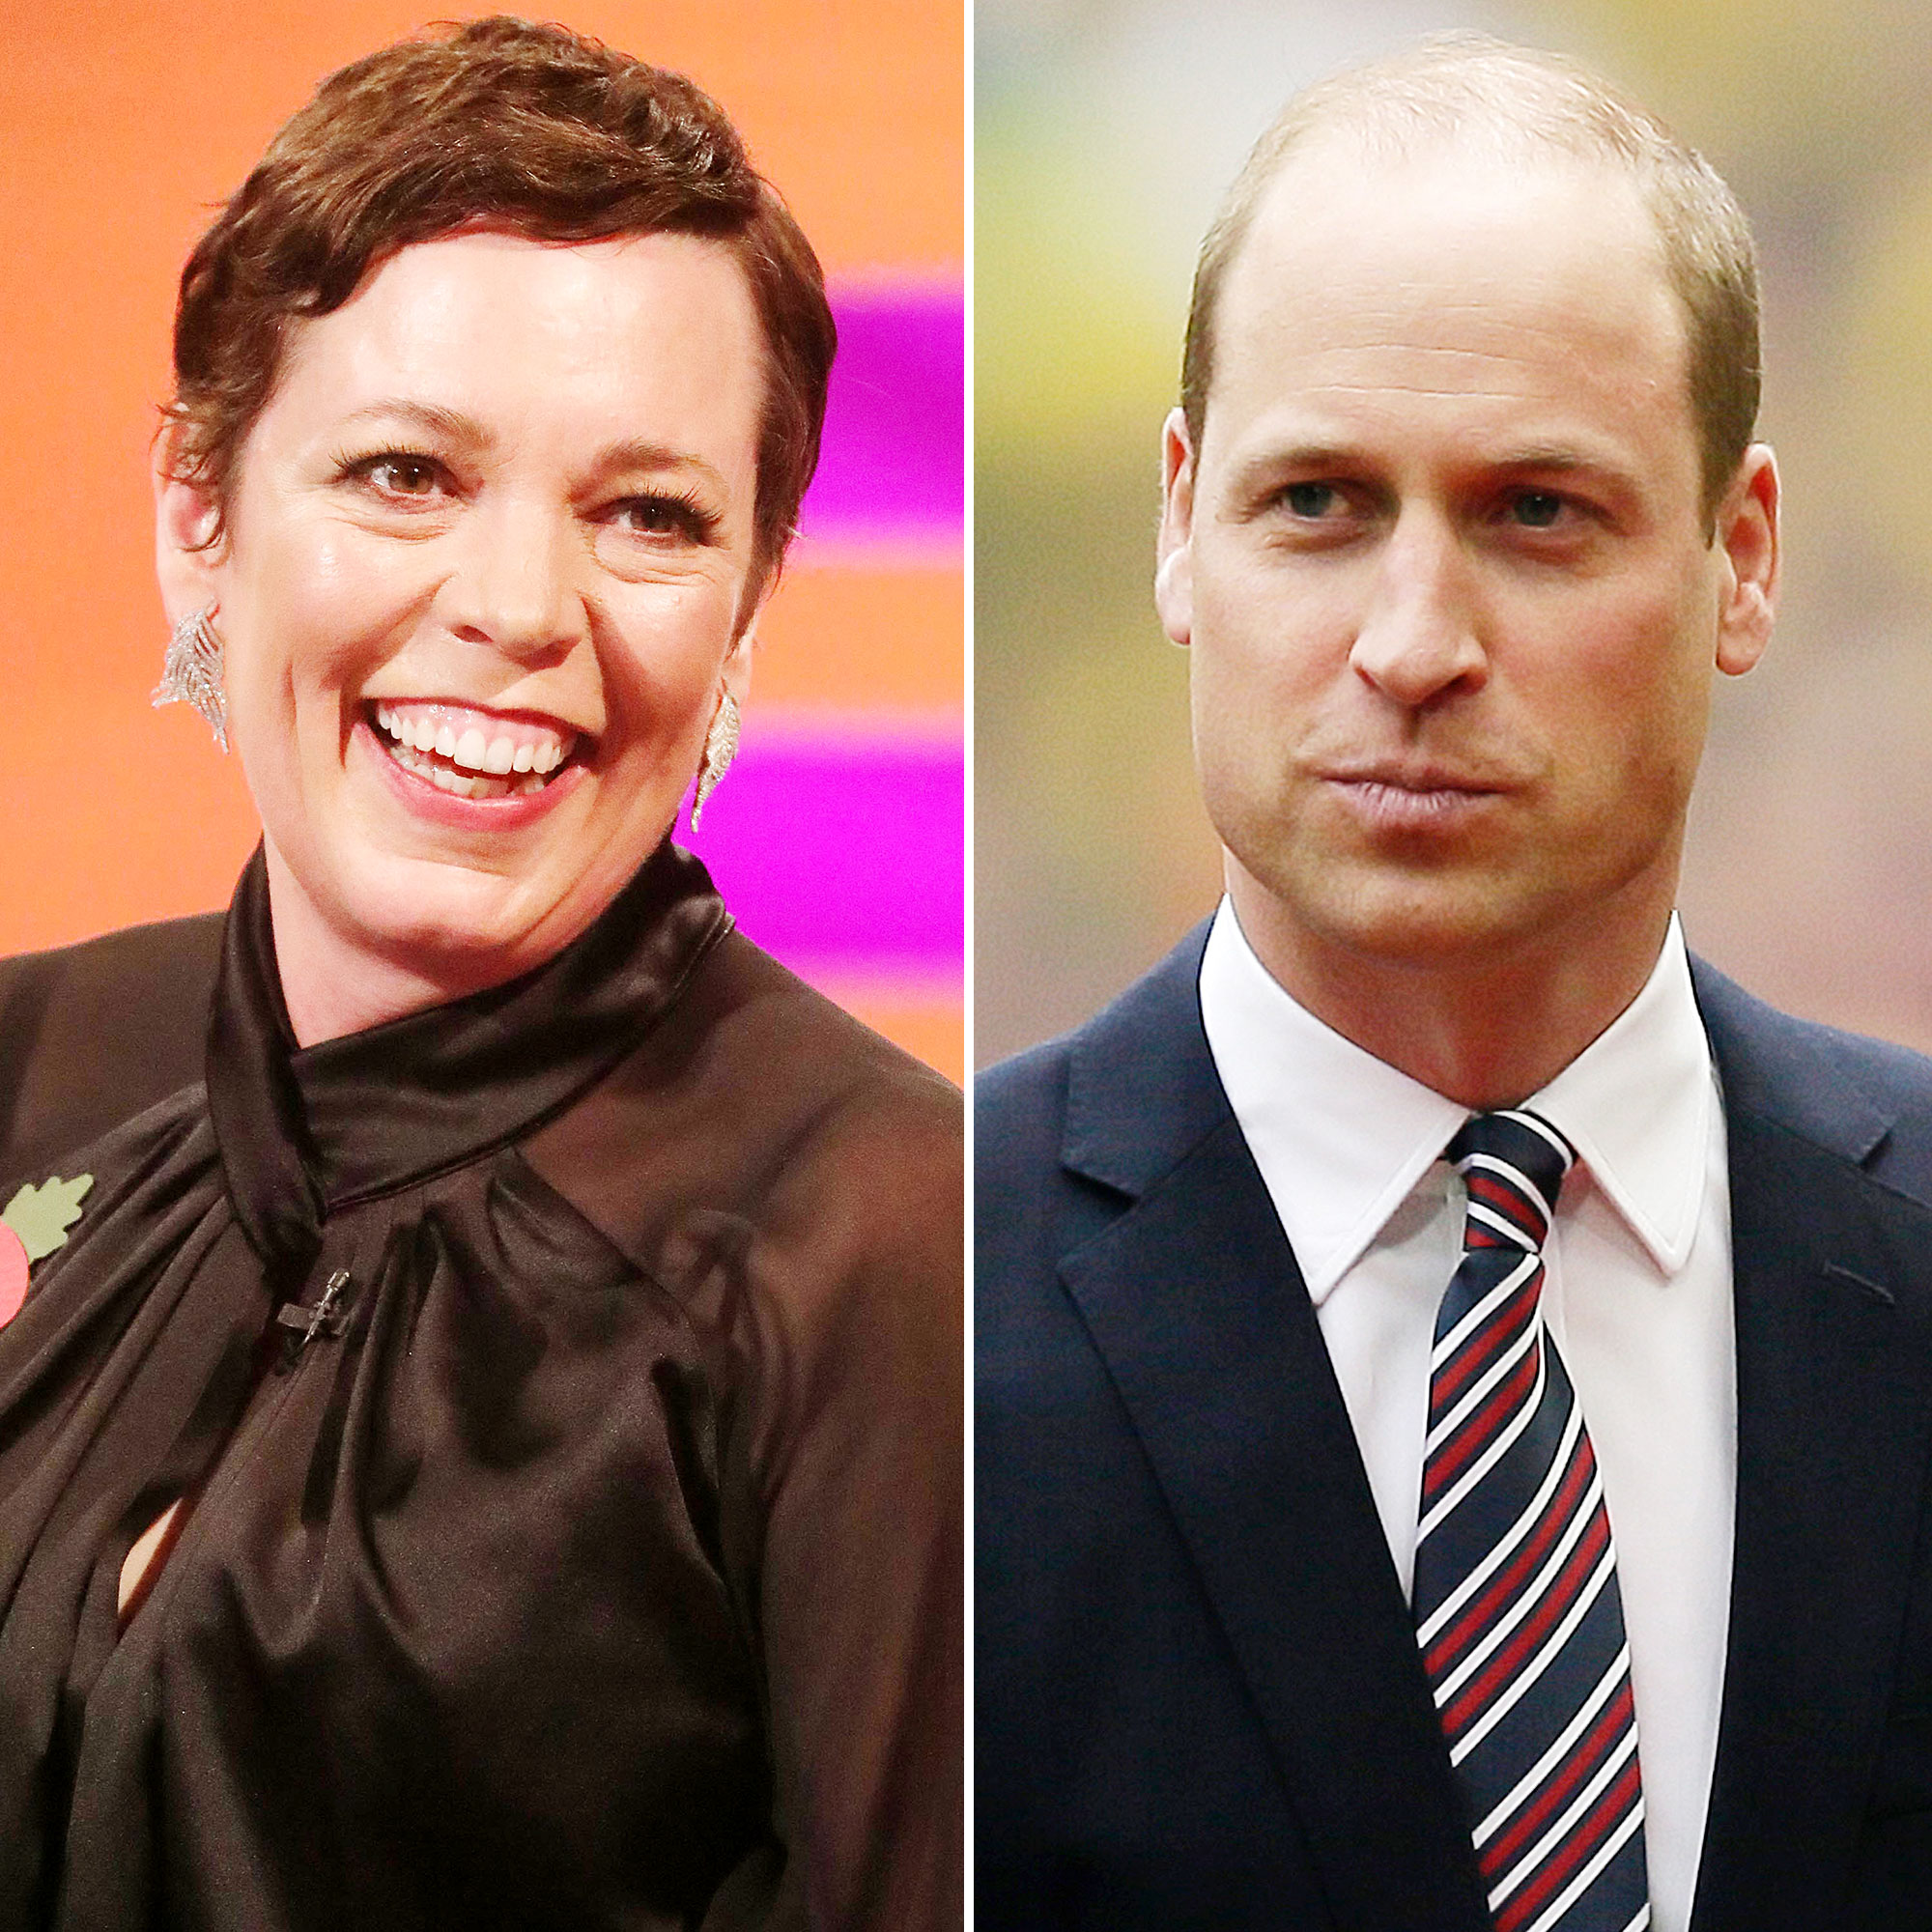 The Crowns Olivia Colman Says Her Chat With Prince William Didn't Go Over Well